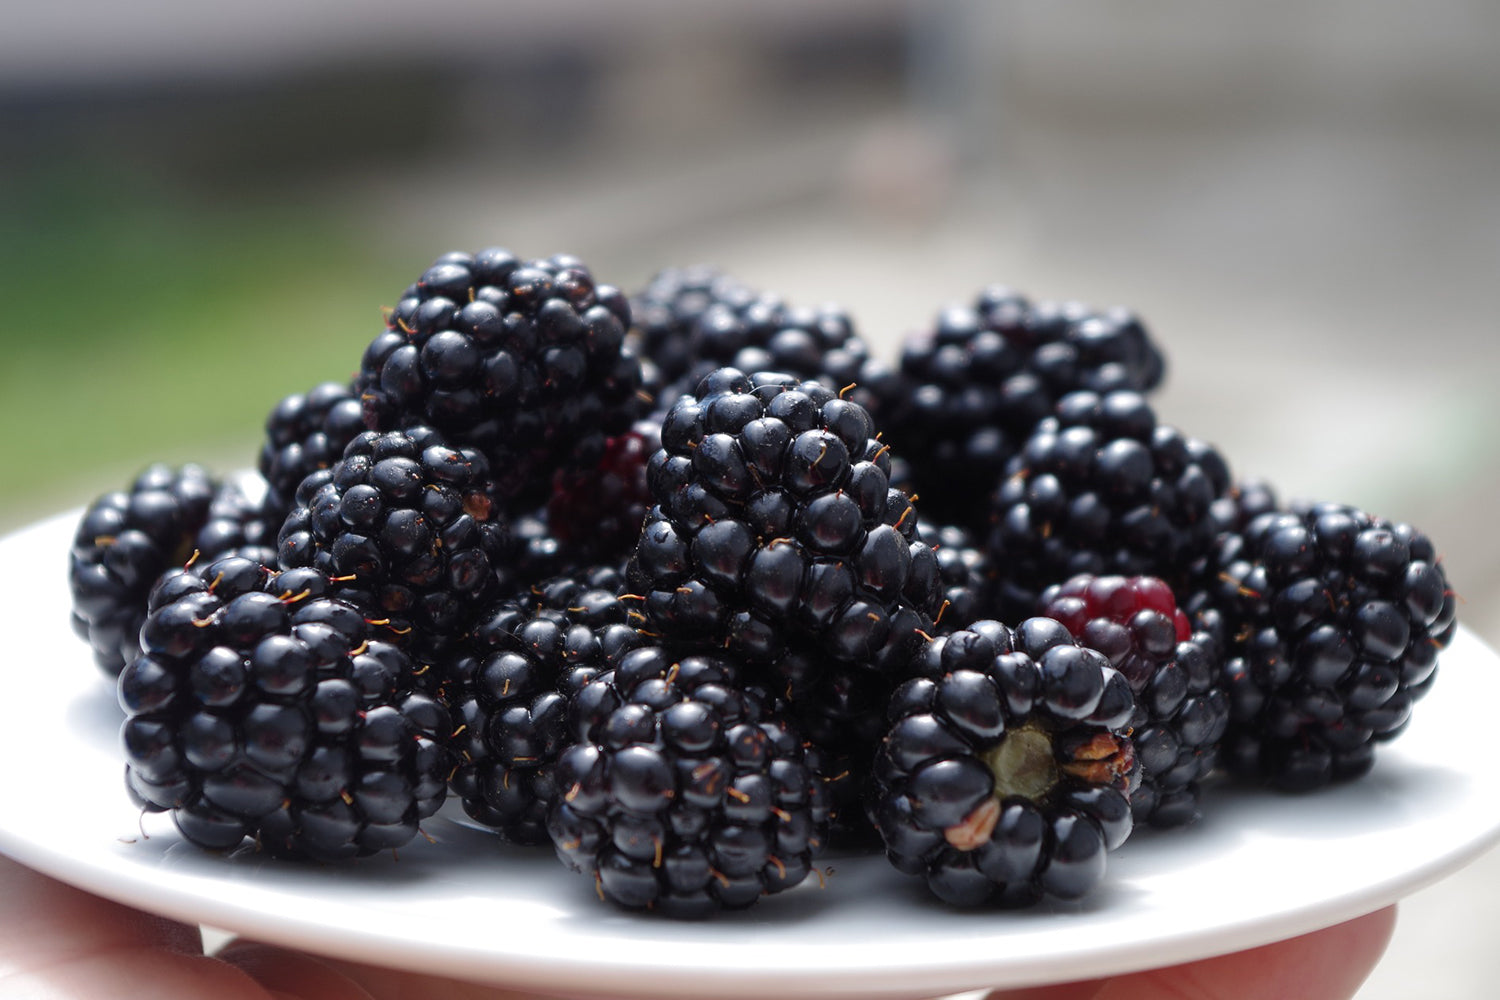 Nutritional Value of Blackberries